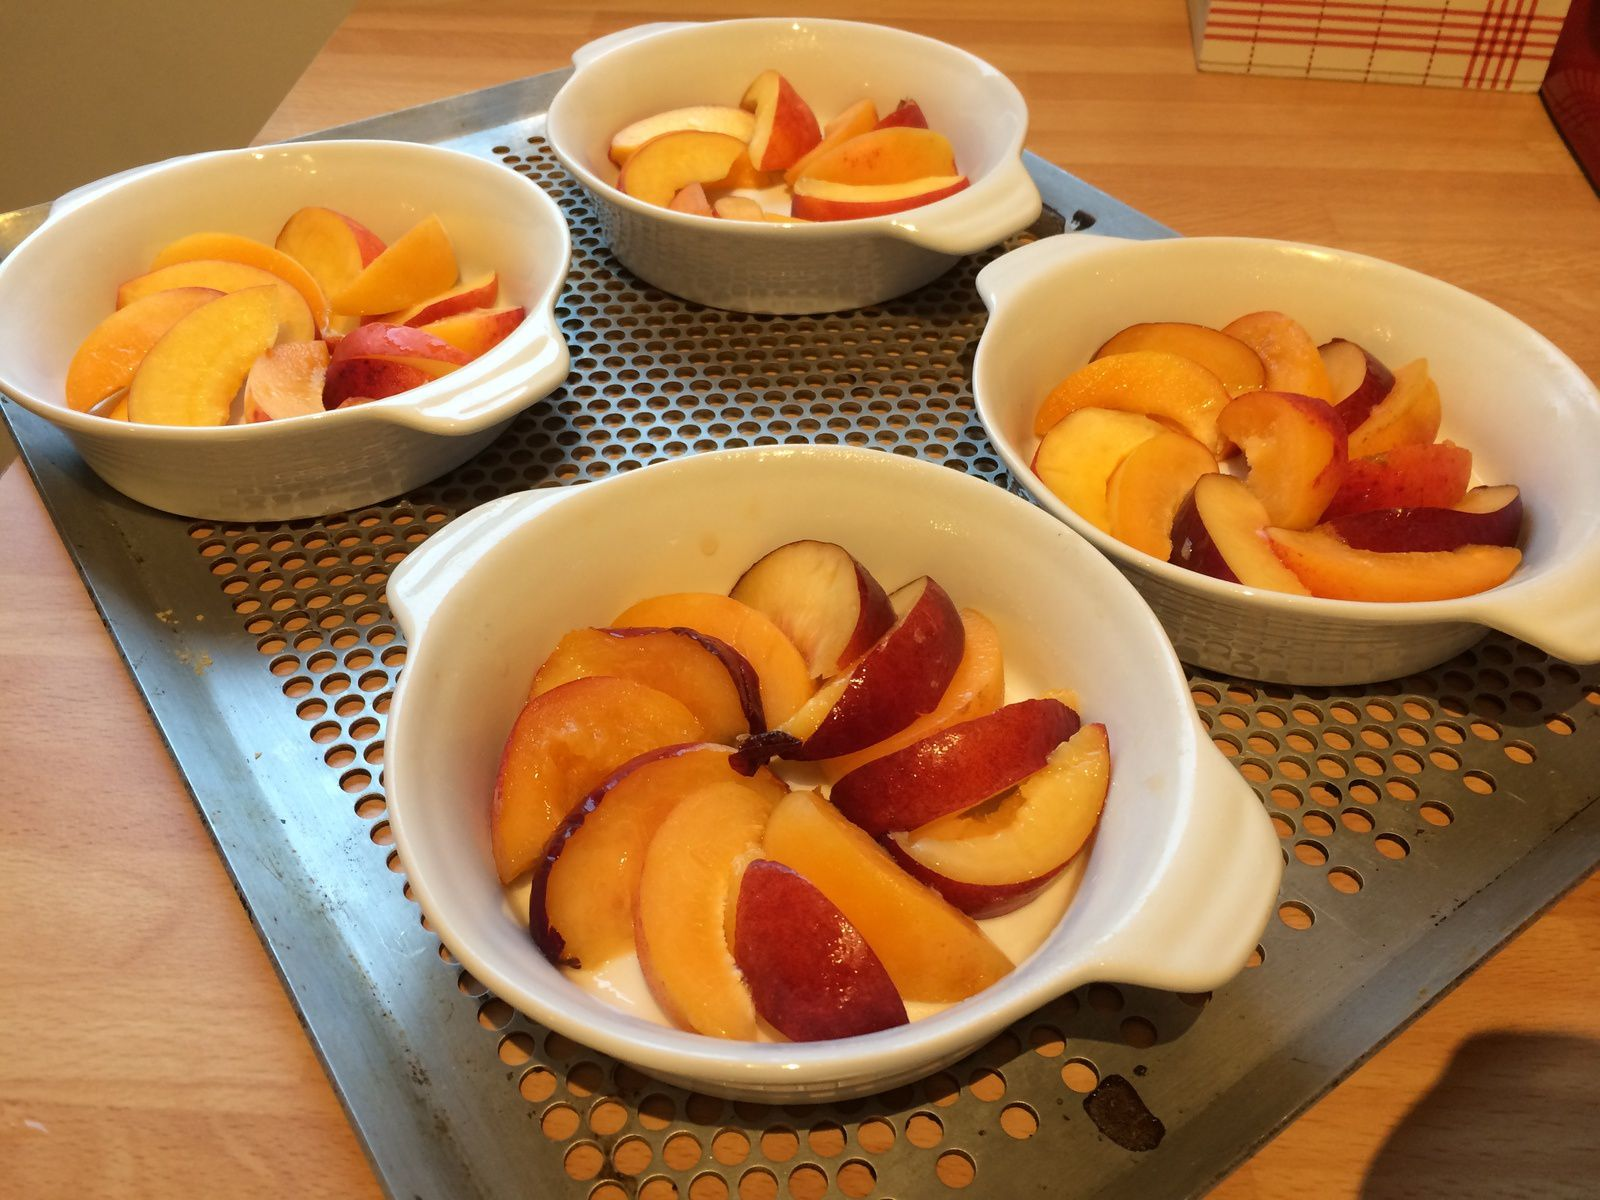 Nectarines et abricots....